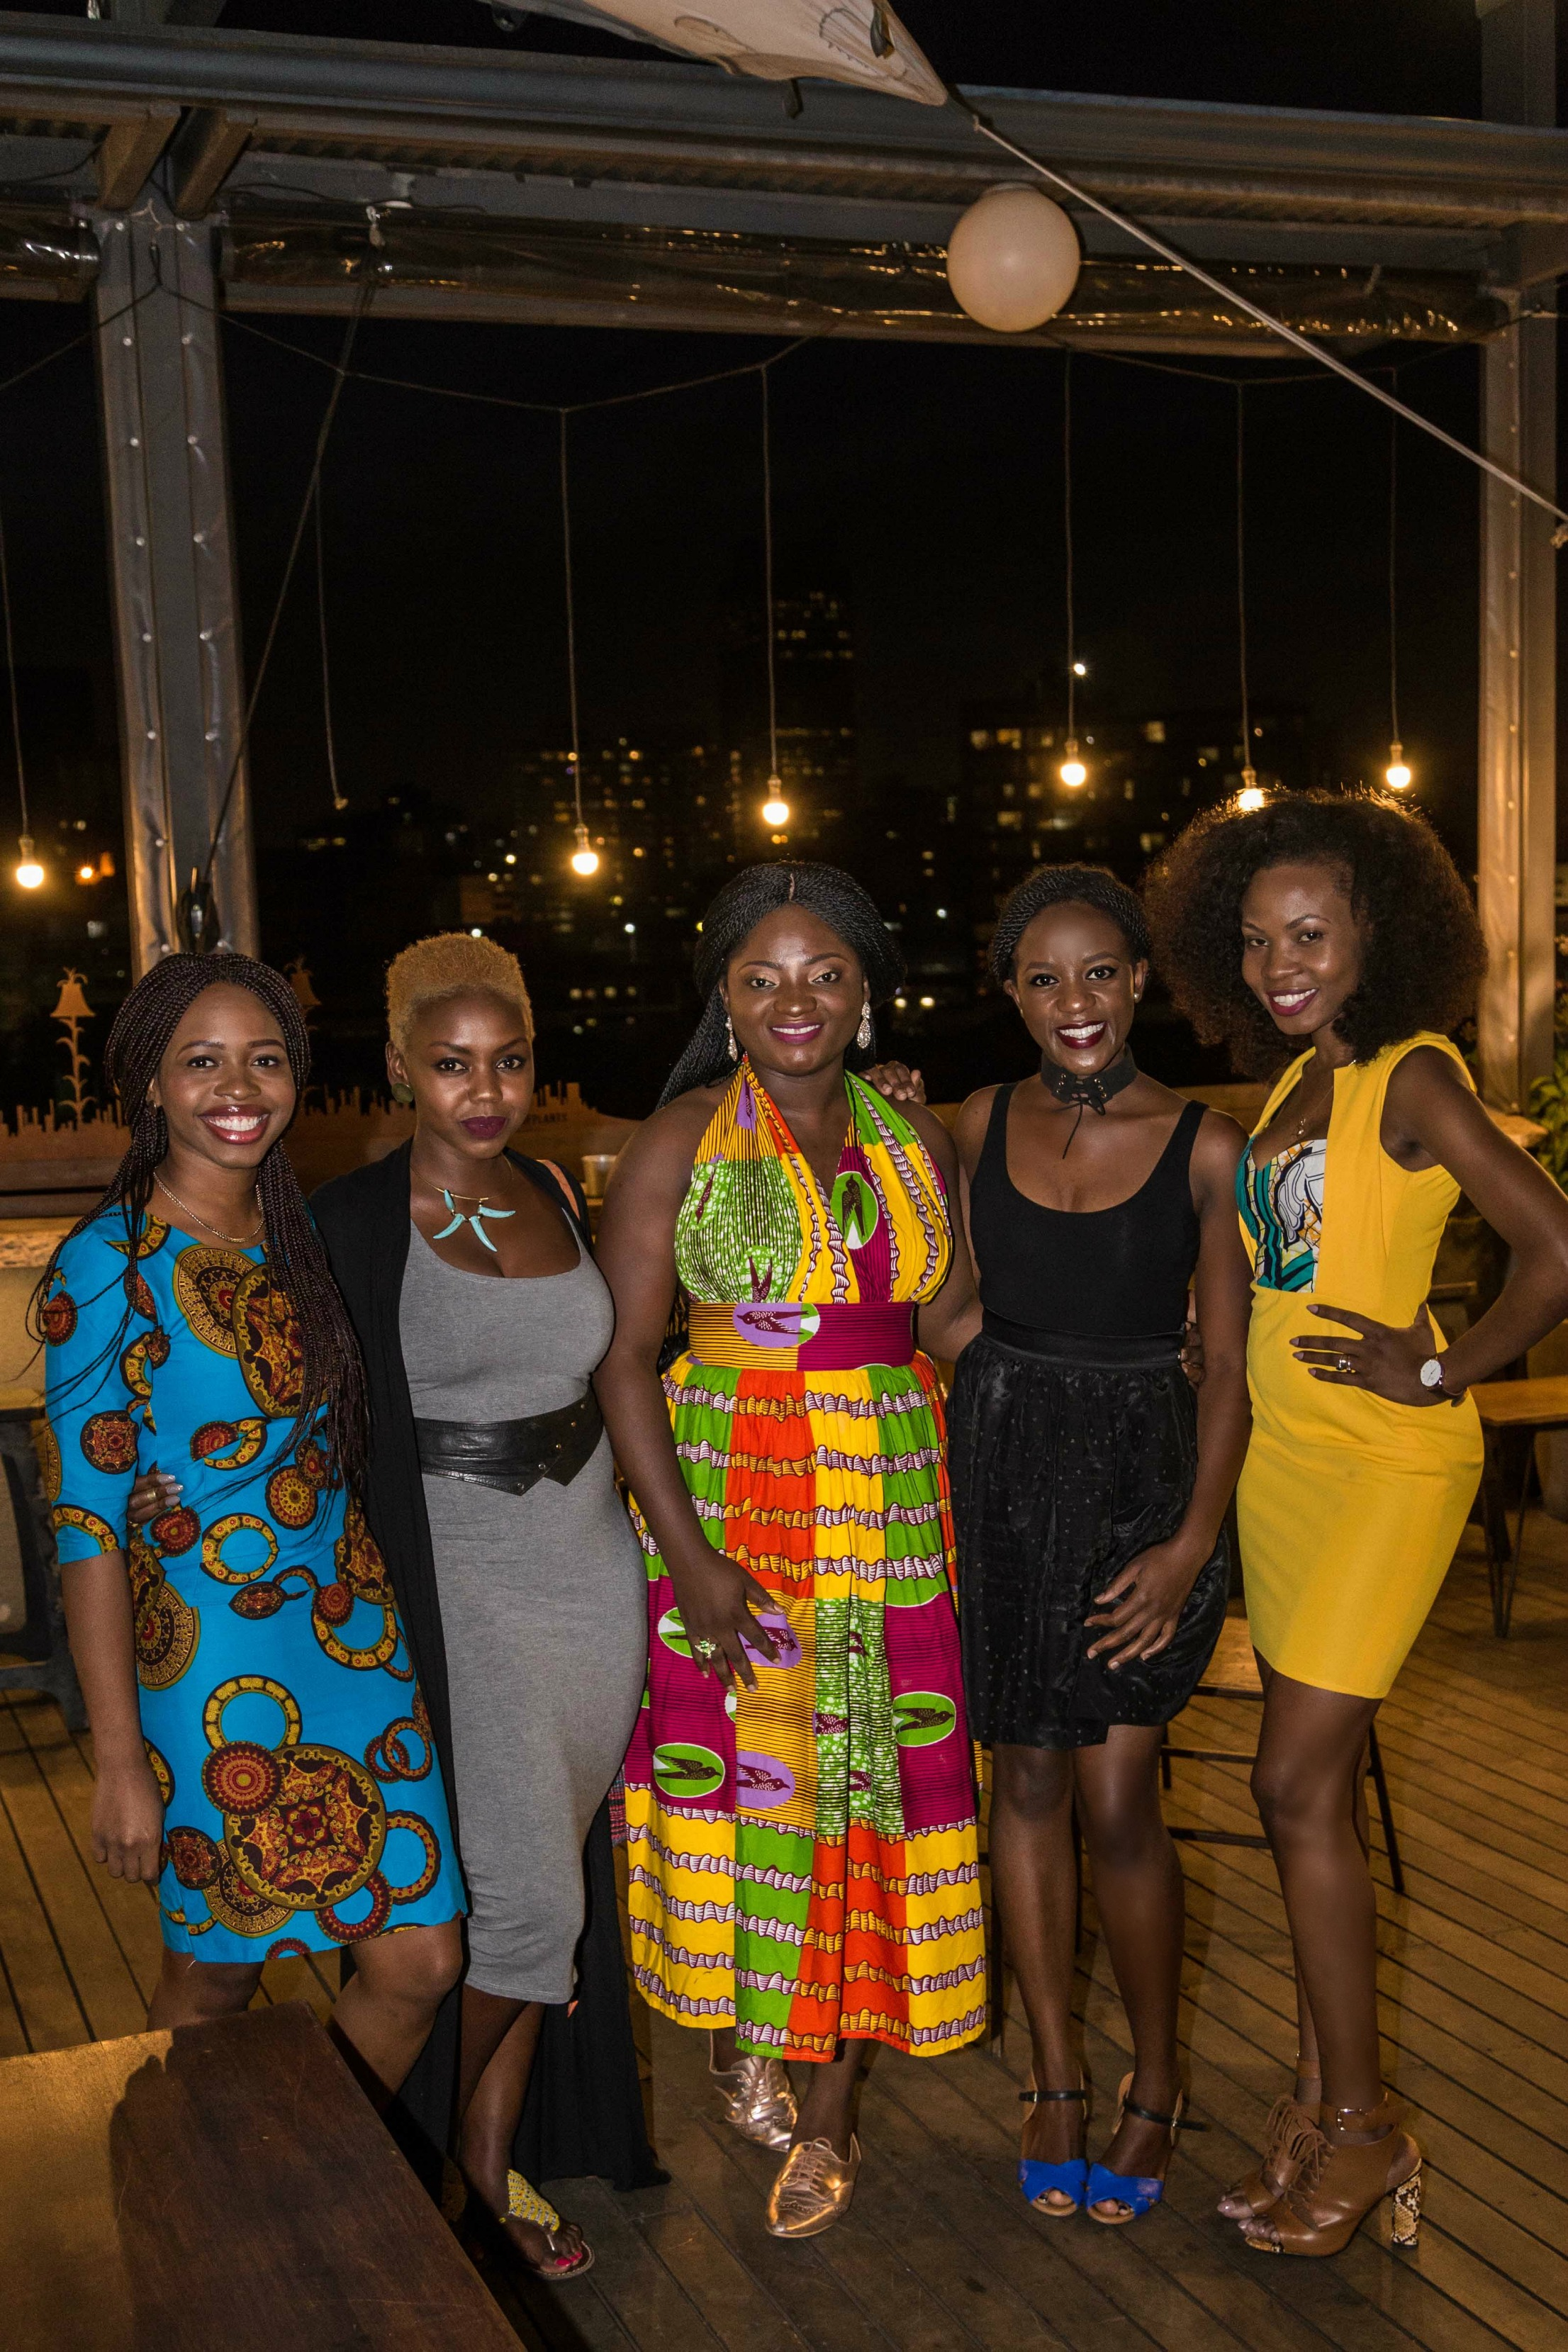 tuke-morgan-patricia-kihoro-adetosin-kaluhi-adagala-and-lucia-musai-at-the-google-excursion-joziwithgoogle-dinner-launch